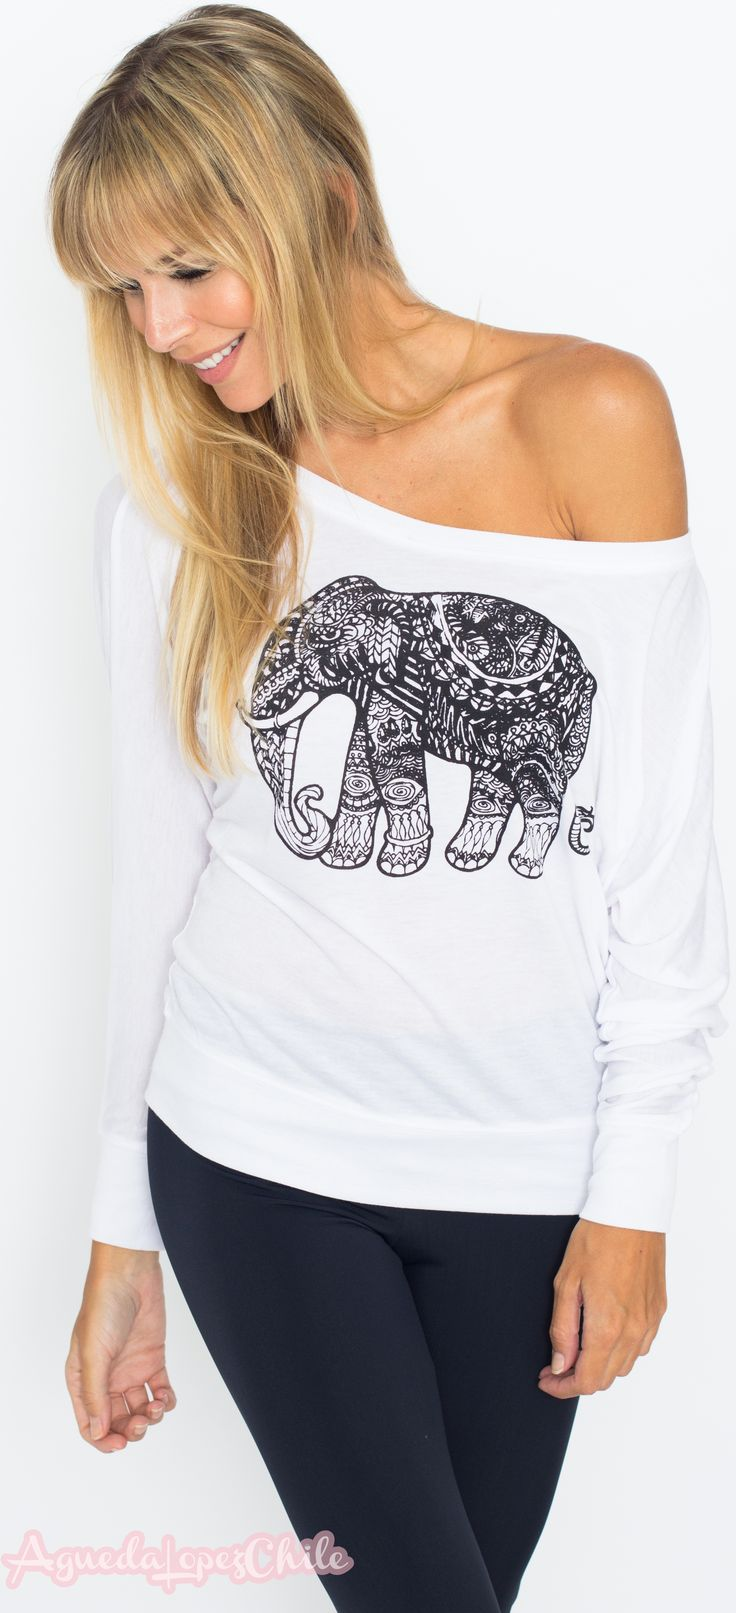 Who doesn't love elephants? They show us how to be strong, yet calm, and to take care of our loved ones. New tops coming soon!!! funkyyoga.com